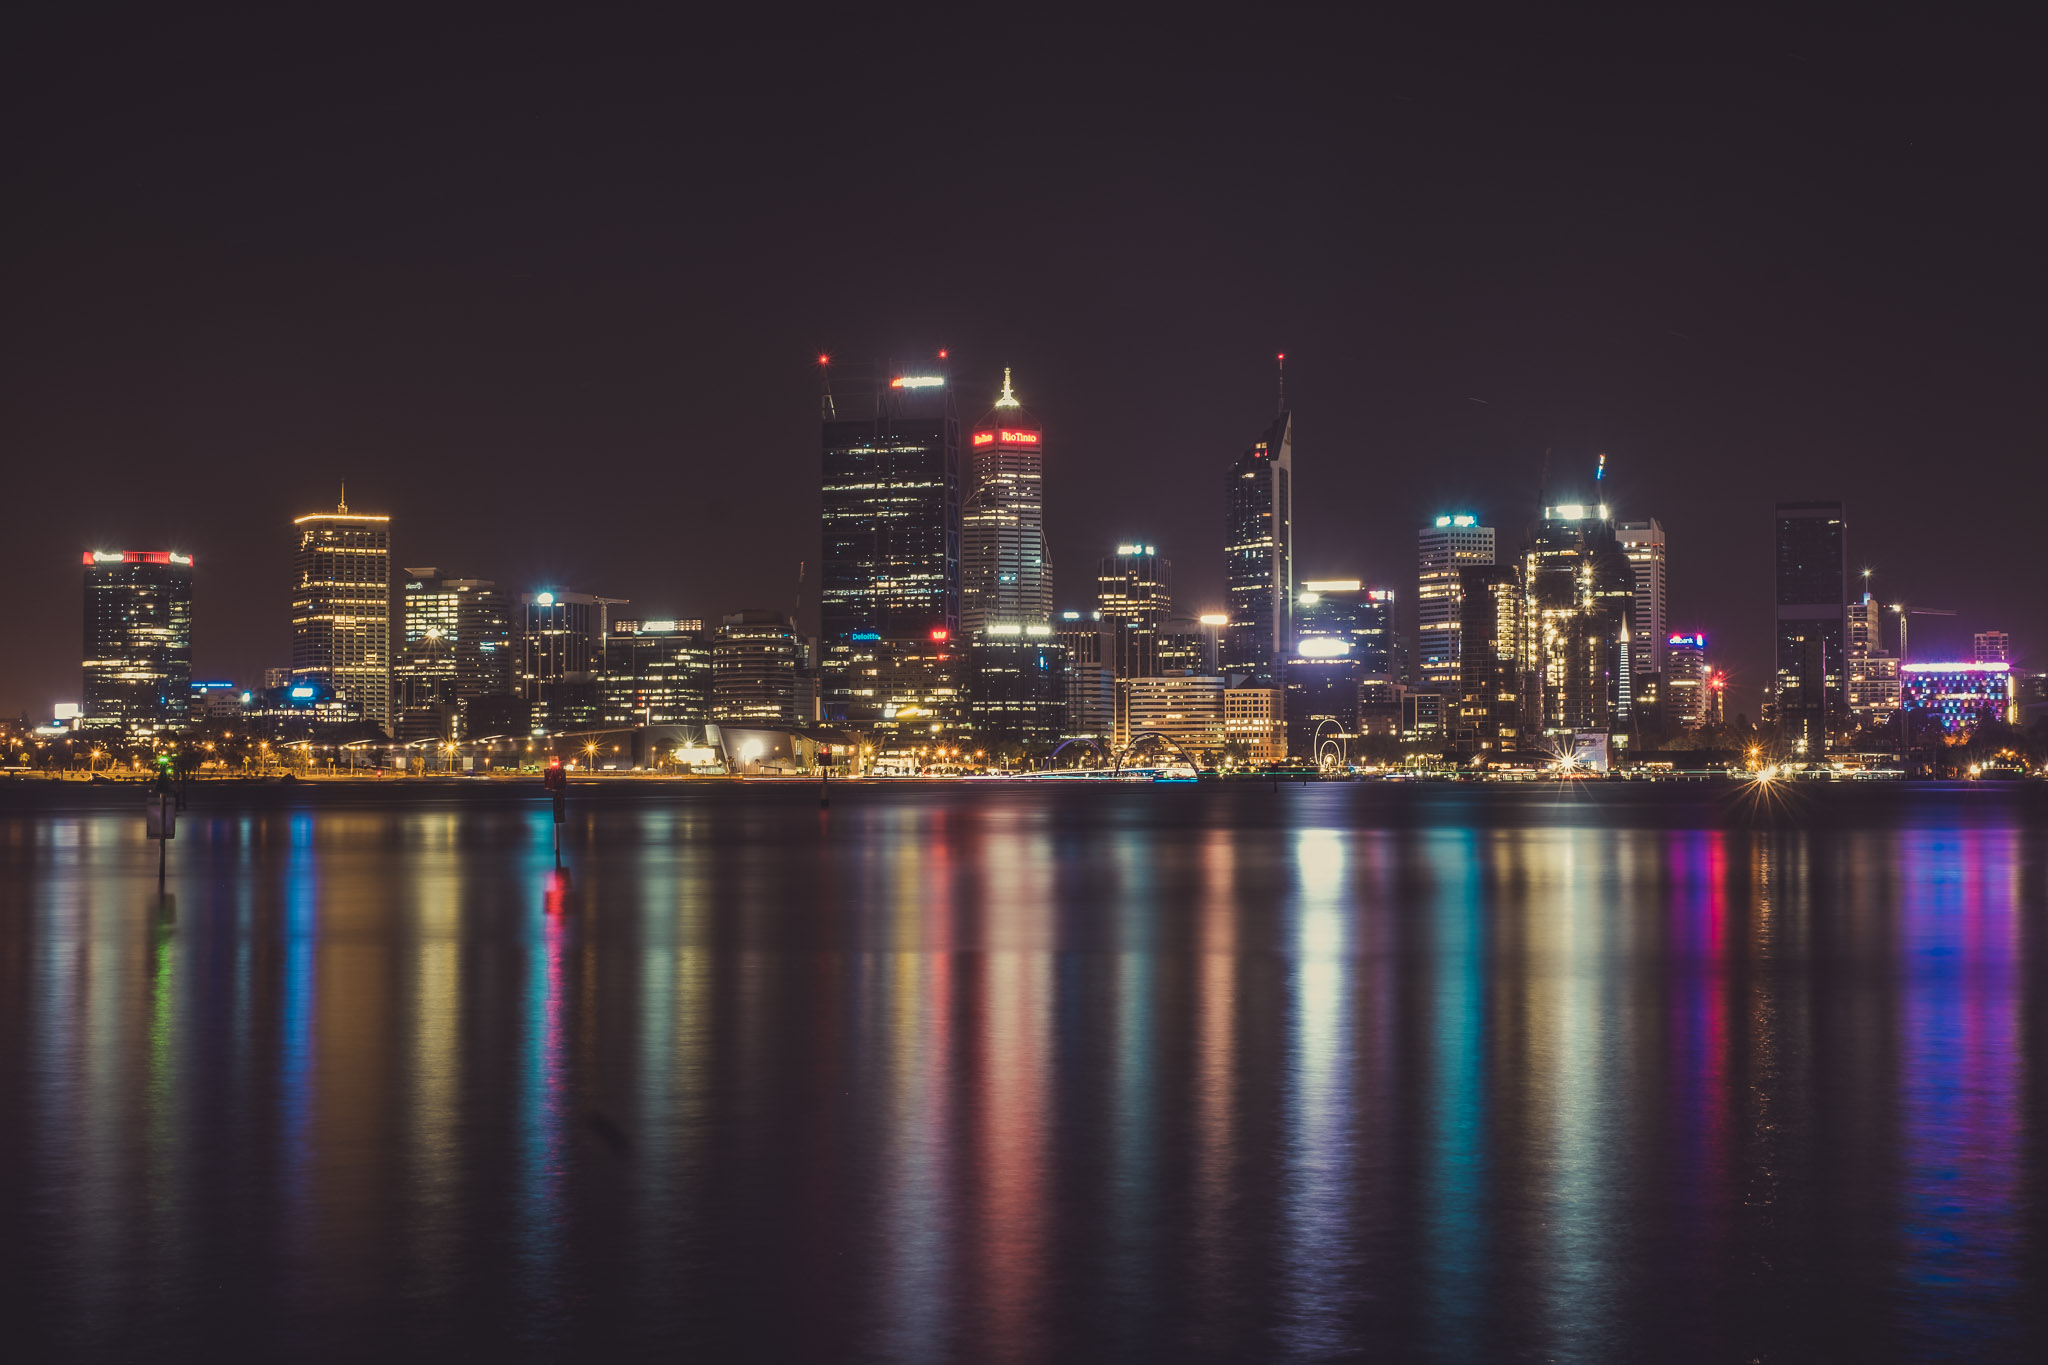 Perth City Night Photo Course - Get off auto mode and shoot in manual mode the cityscape. Control ISO, Shutter Speed & Aperture creatively. Master Composition and walk away with the confidence to shoot in low light.Price: $99Duration: 2:5 Hours